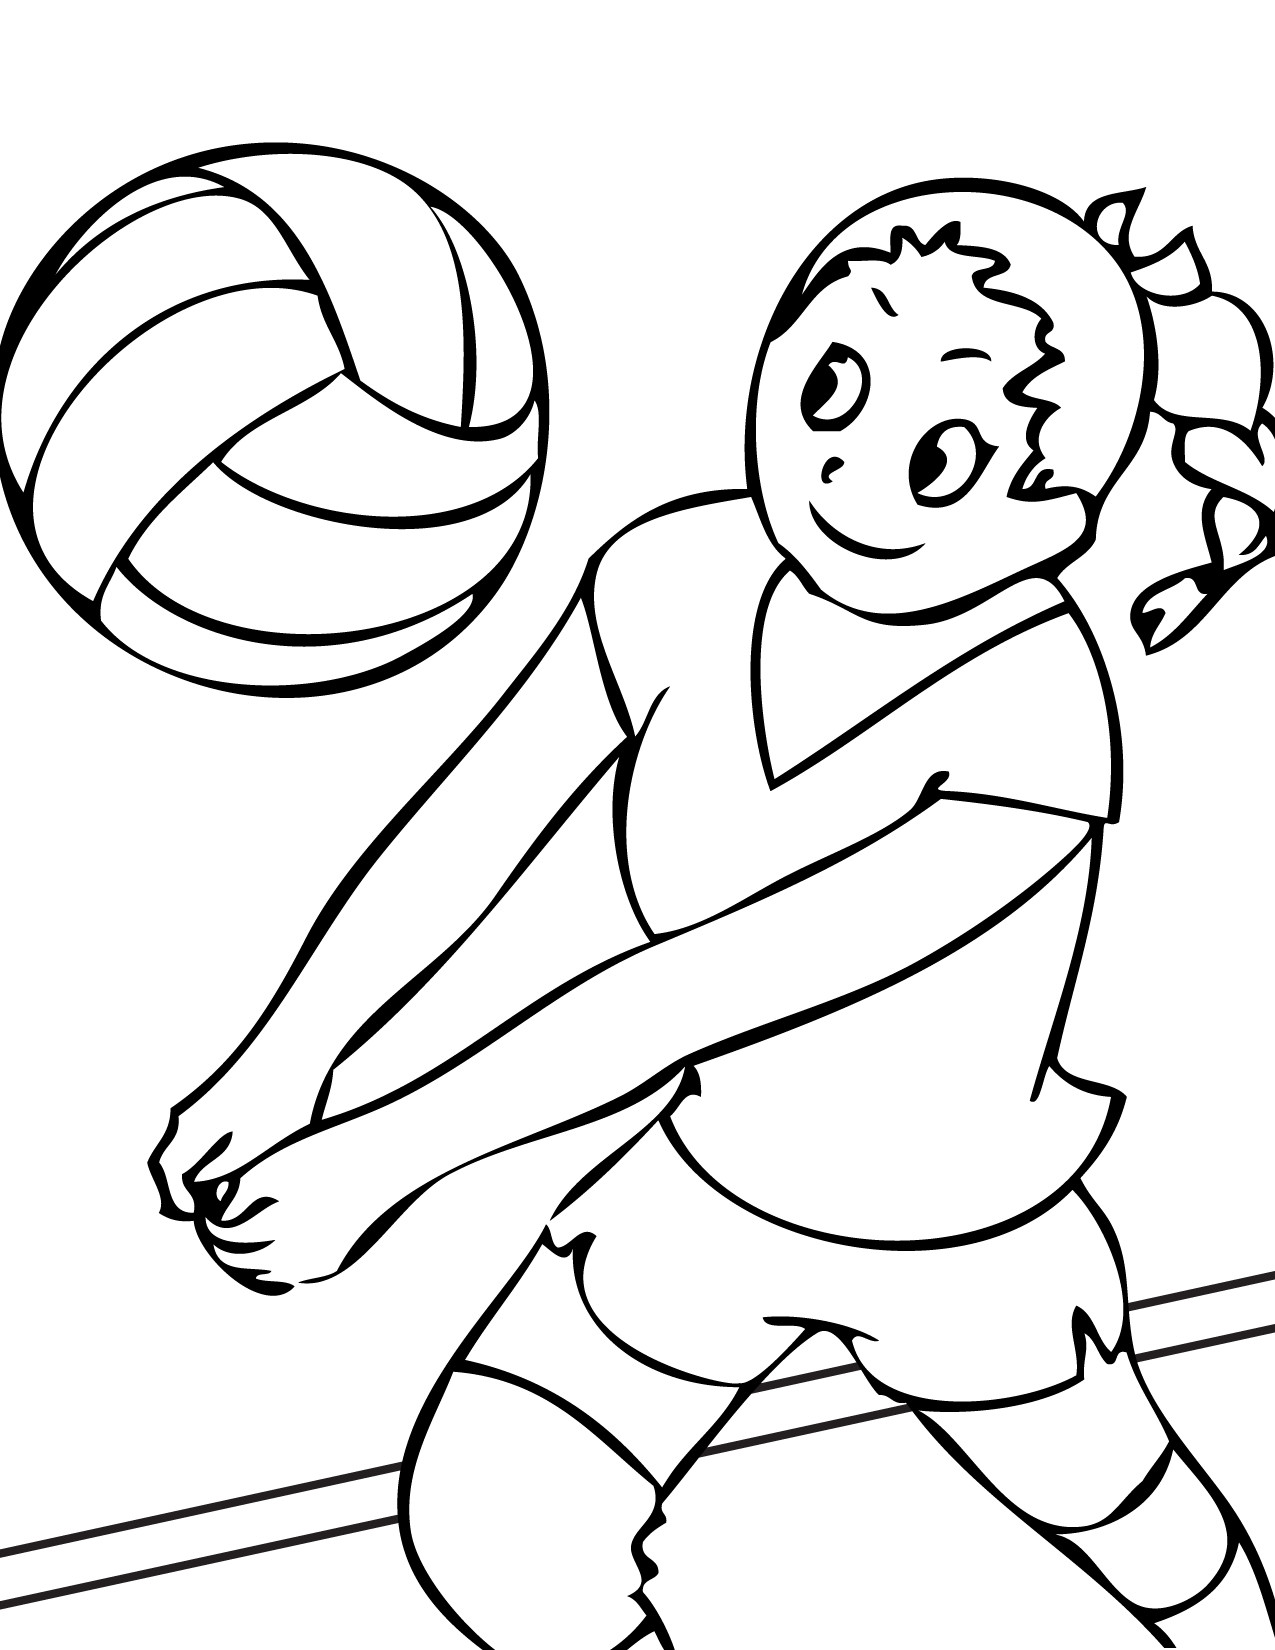 Free Coloring Pages Sports  Seasonal Colouring Pages Winter Sports Coloring Pages